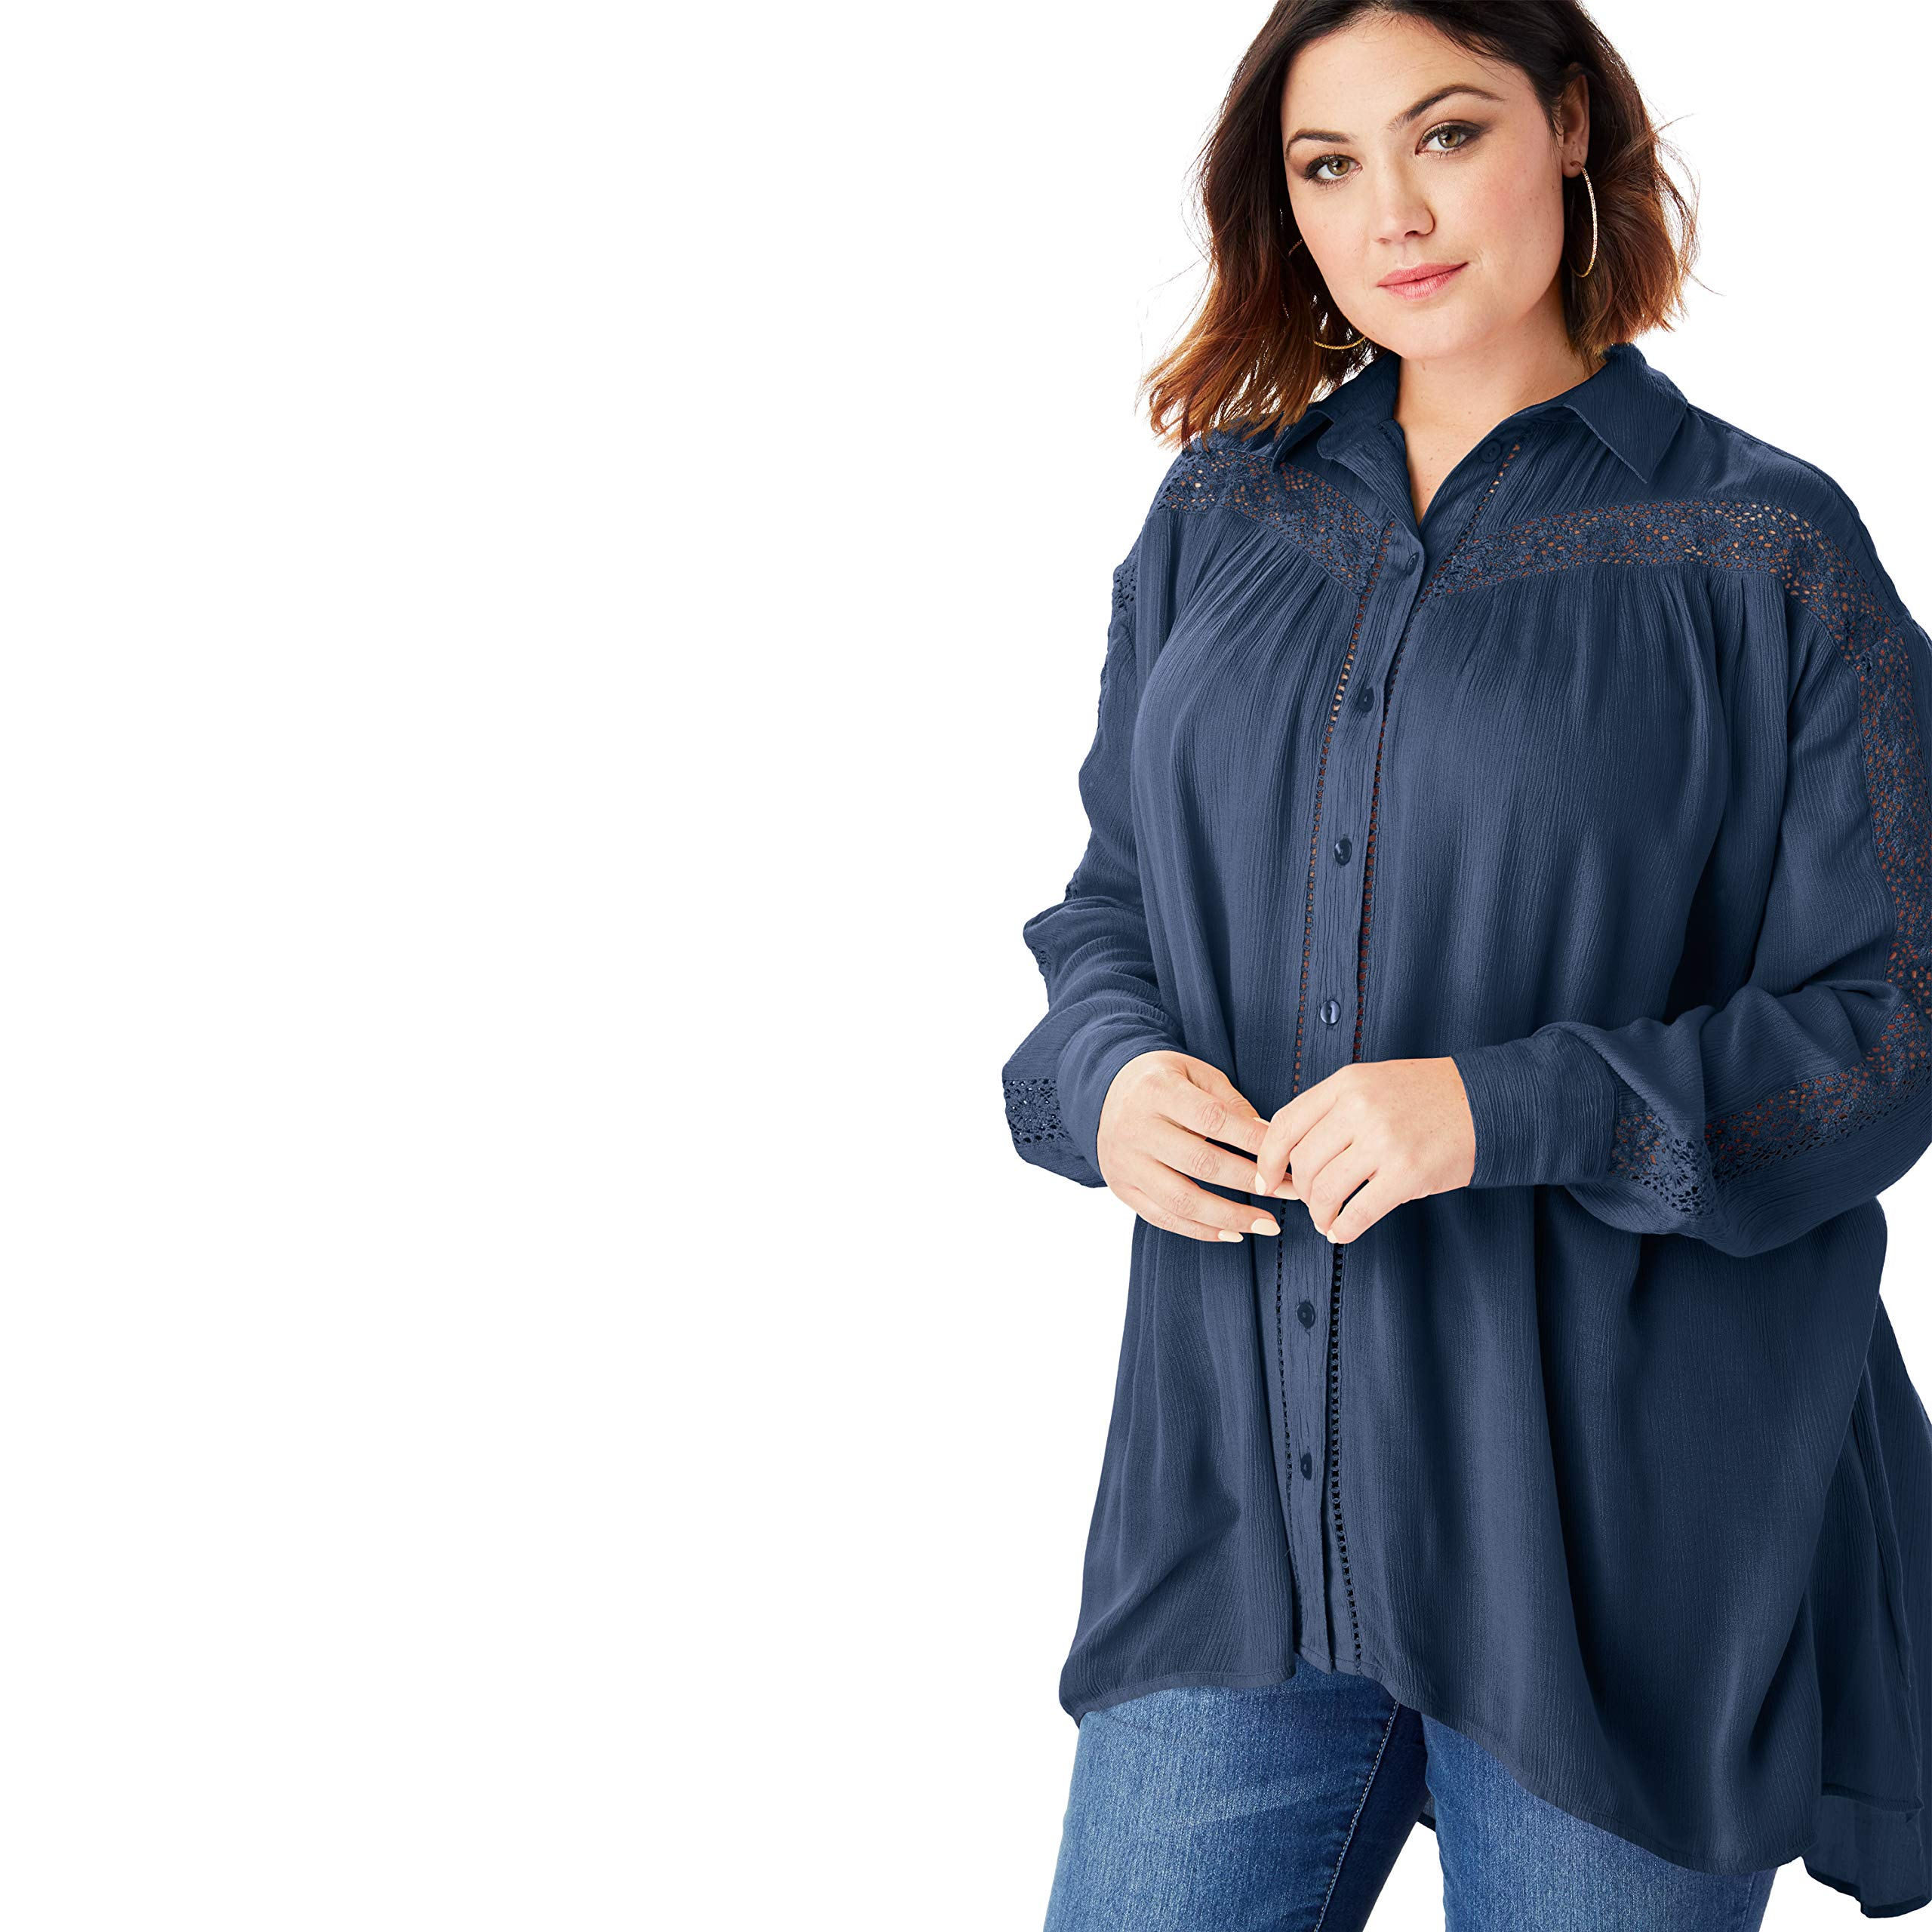 Roamans Women's Plus Size Crinkle Lace Tunic with Button-Front - Navy, 30 W by Roamans